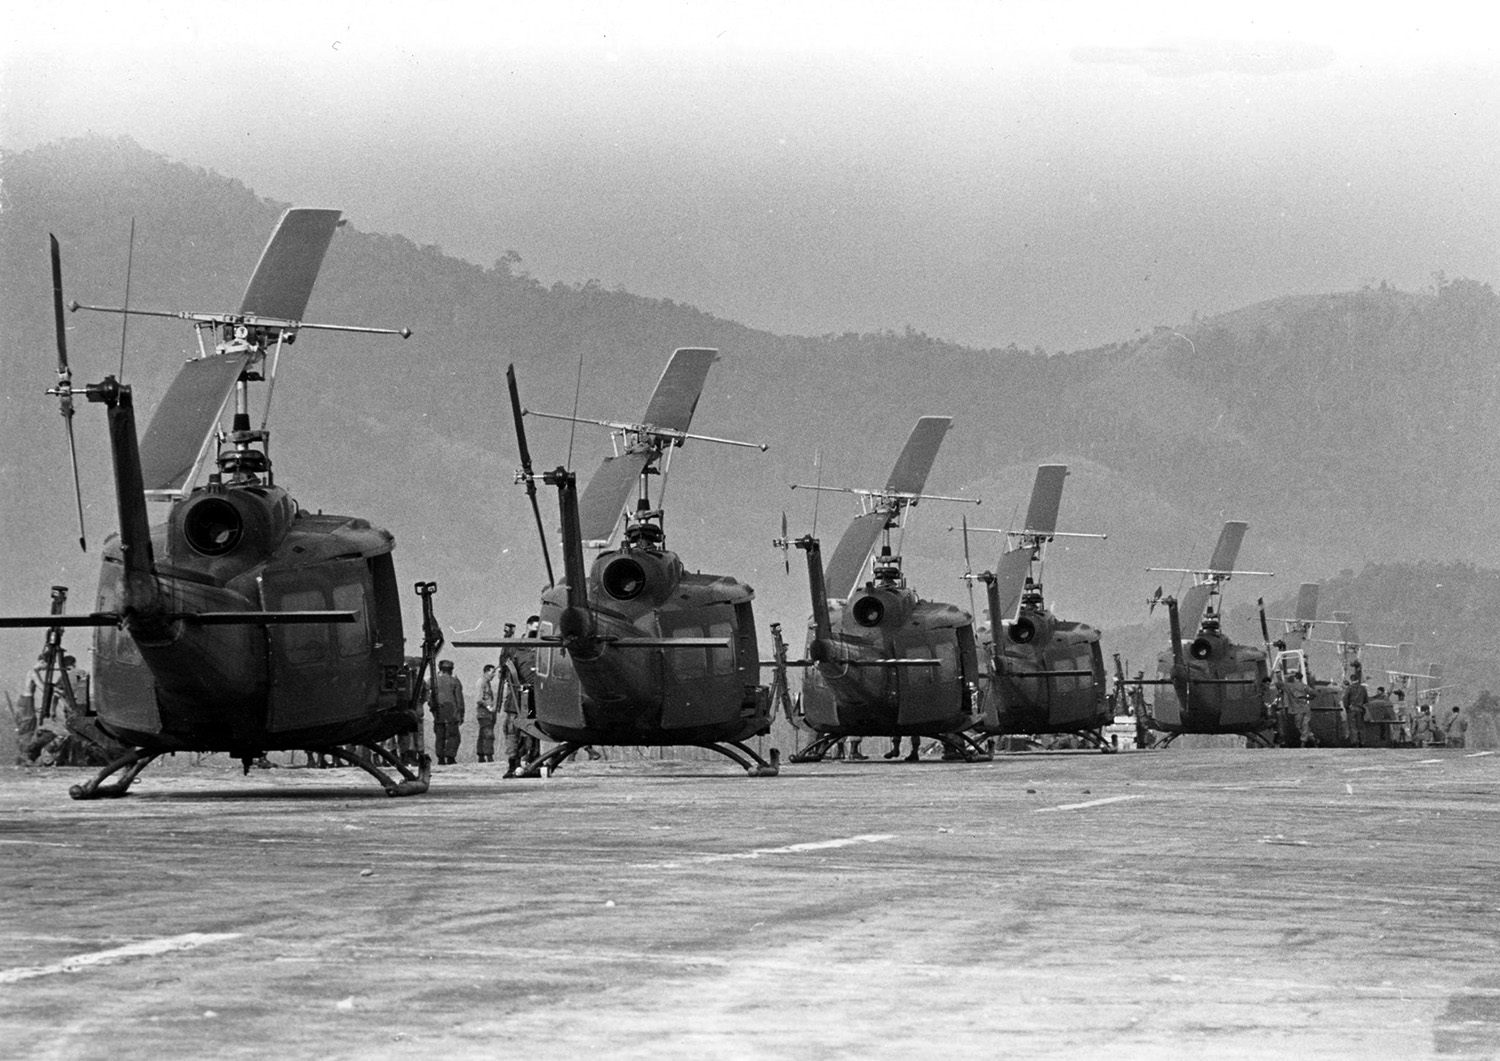 choppers_on_the_tarmac.jpg